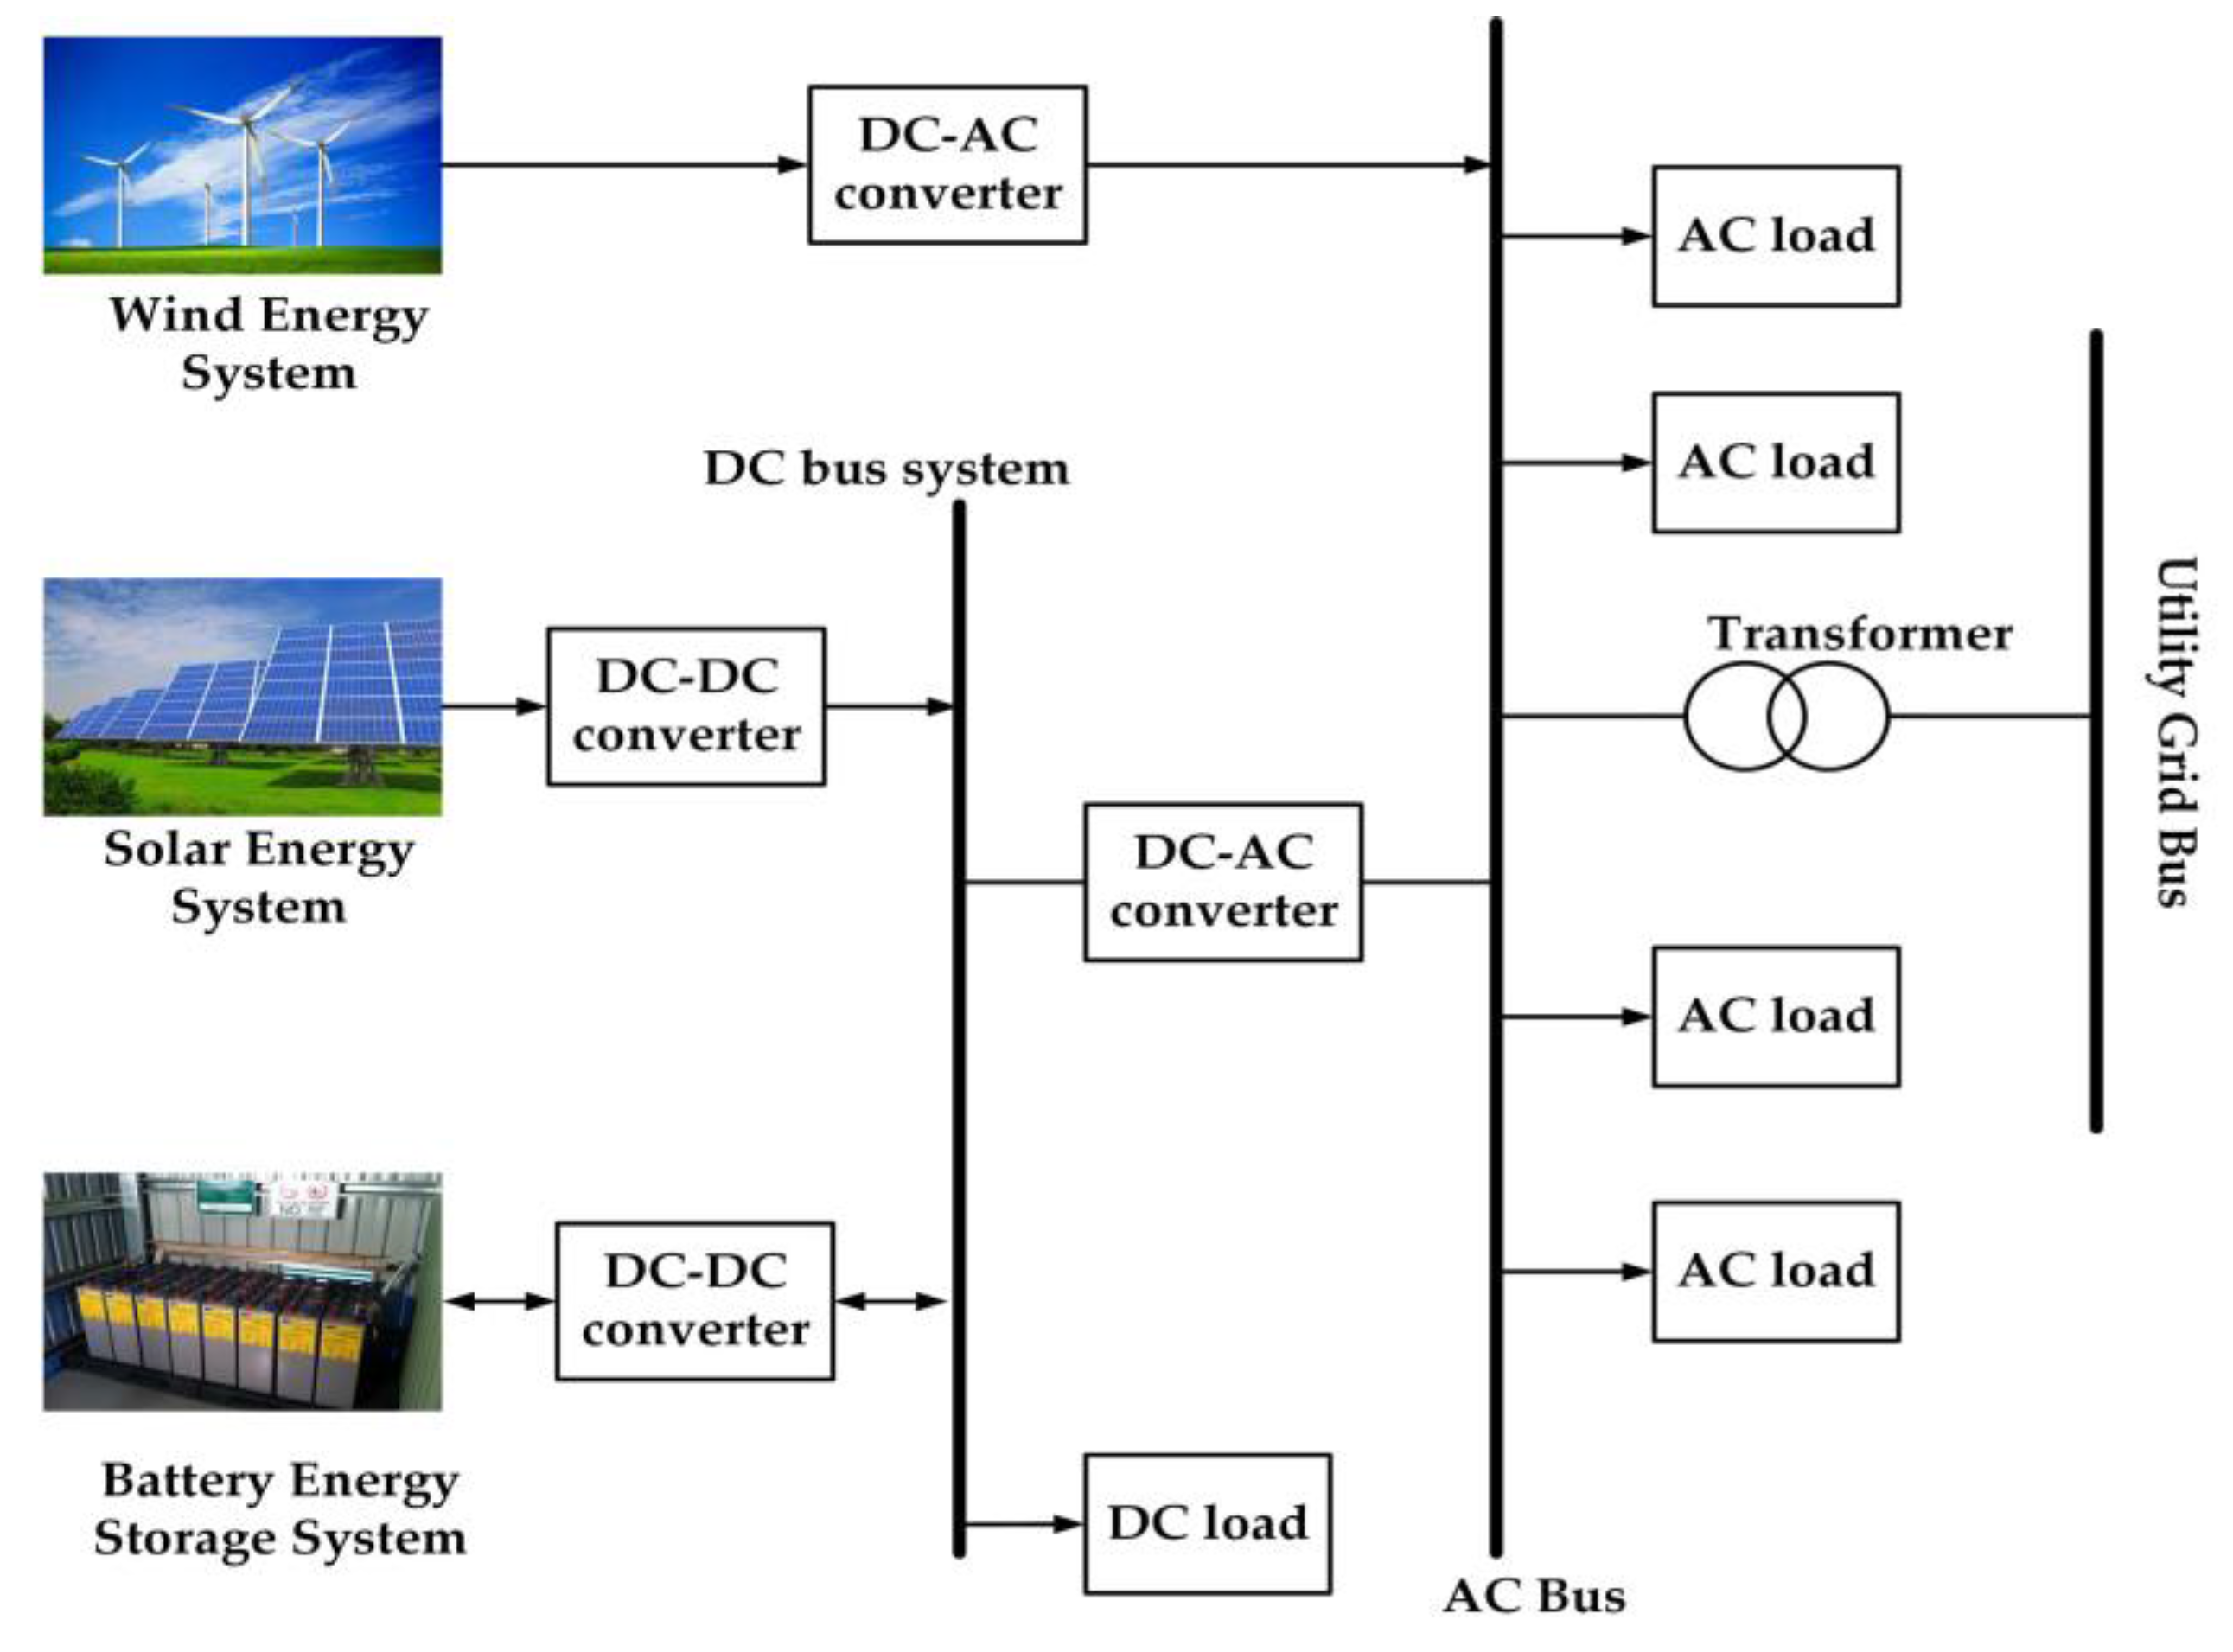 Energies Free Full Text Constant Power Loads Cpl With Ac Constantcurrent Source Design Electrical Engineering Stack 10 01656 G001